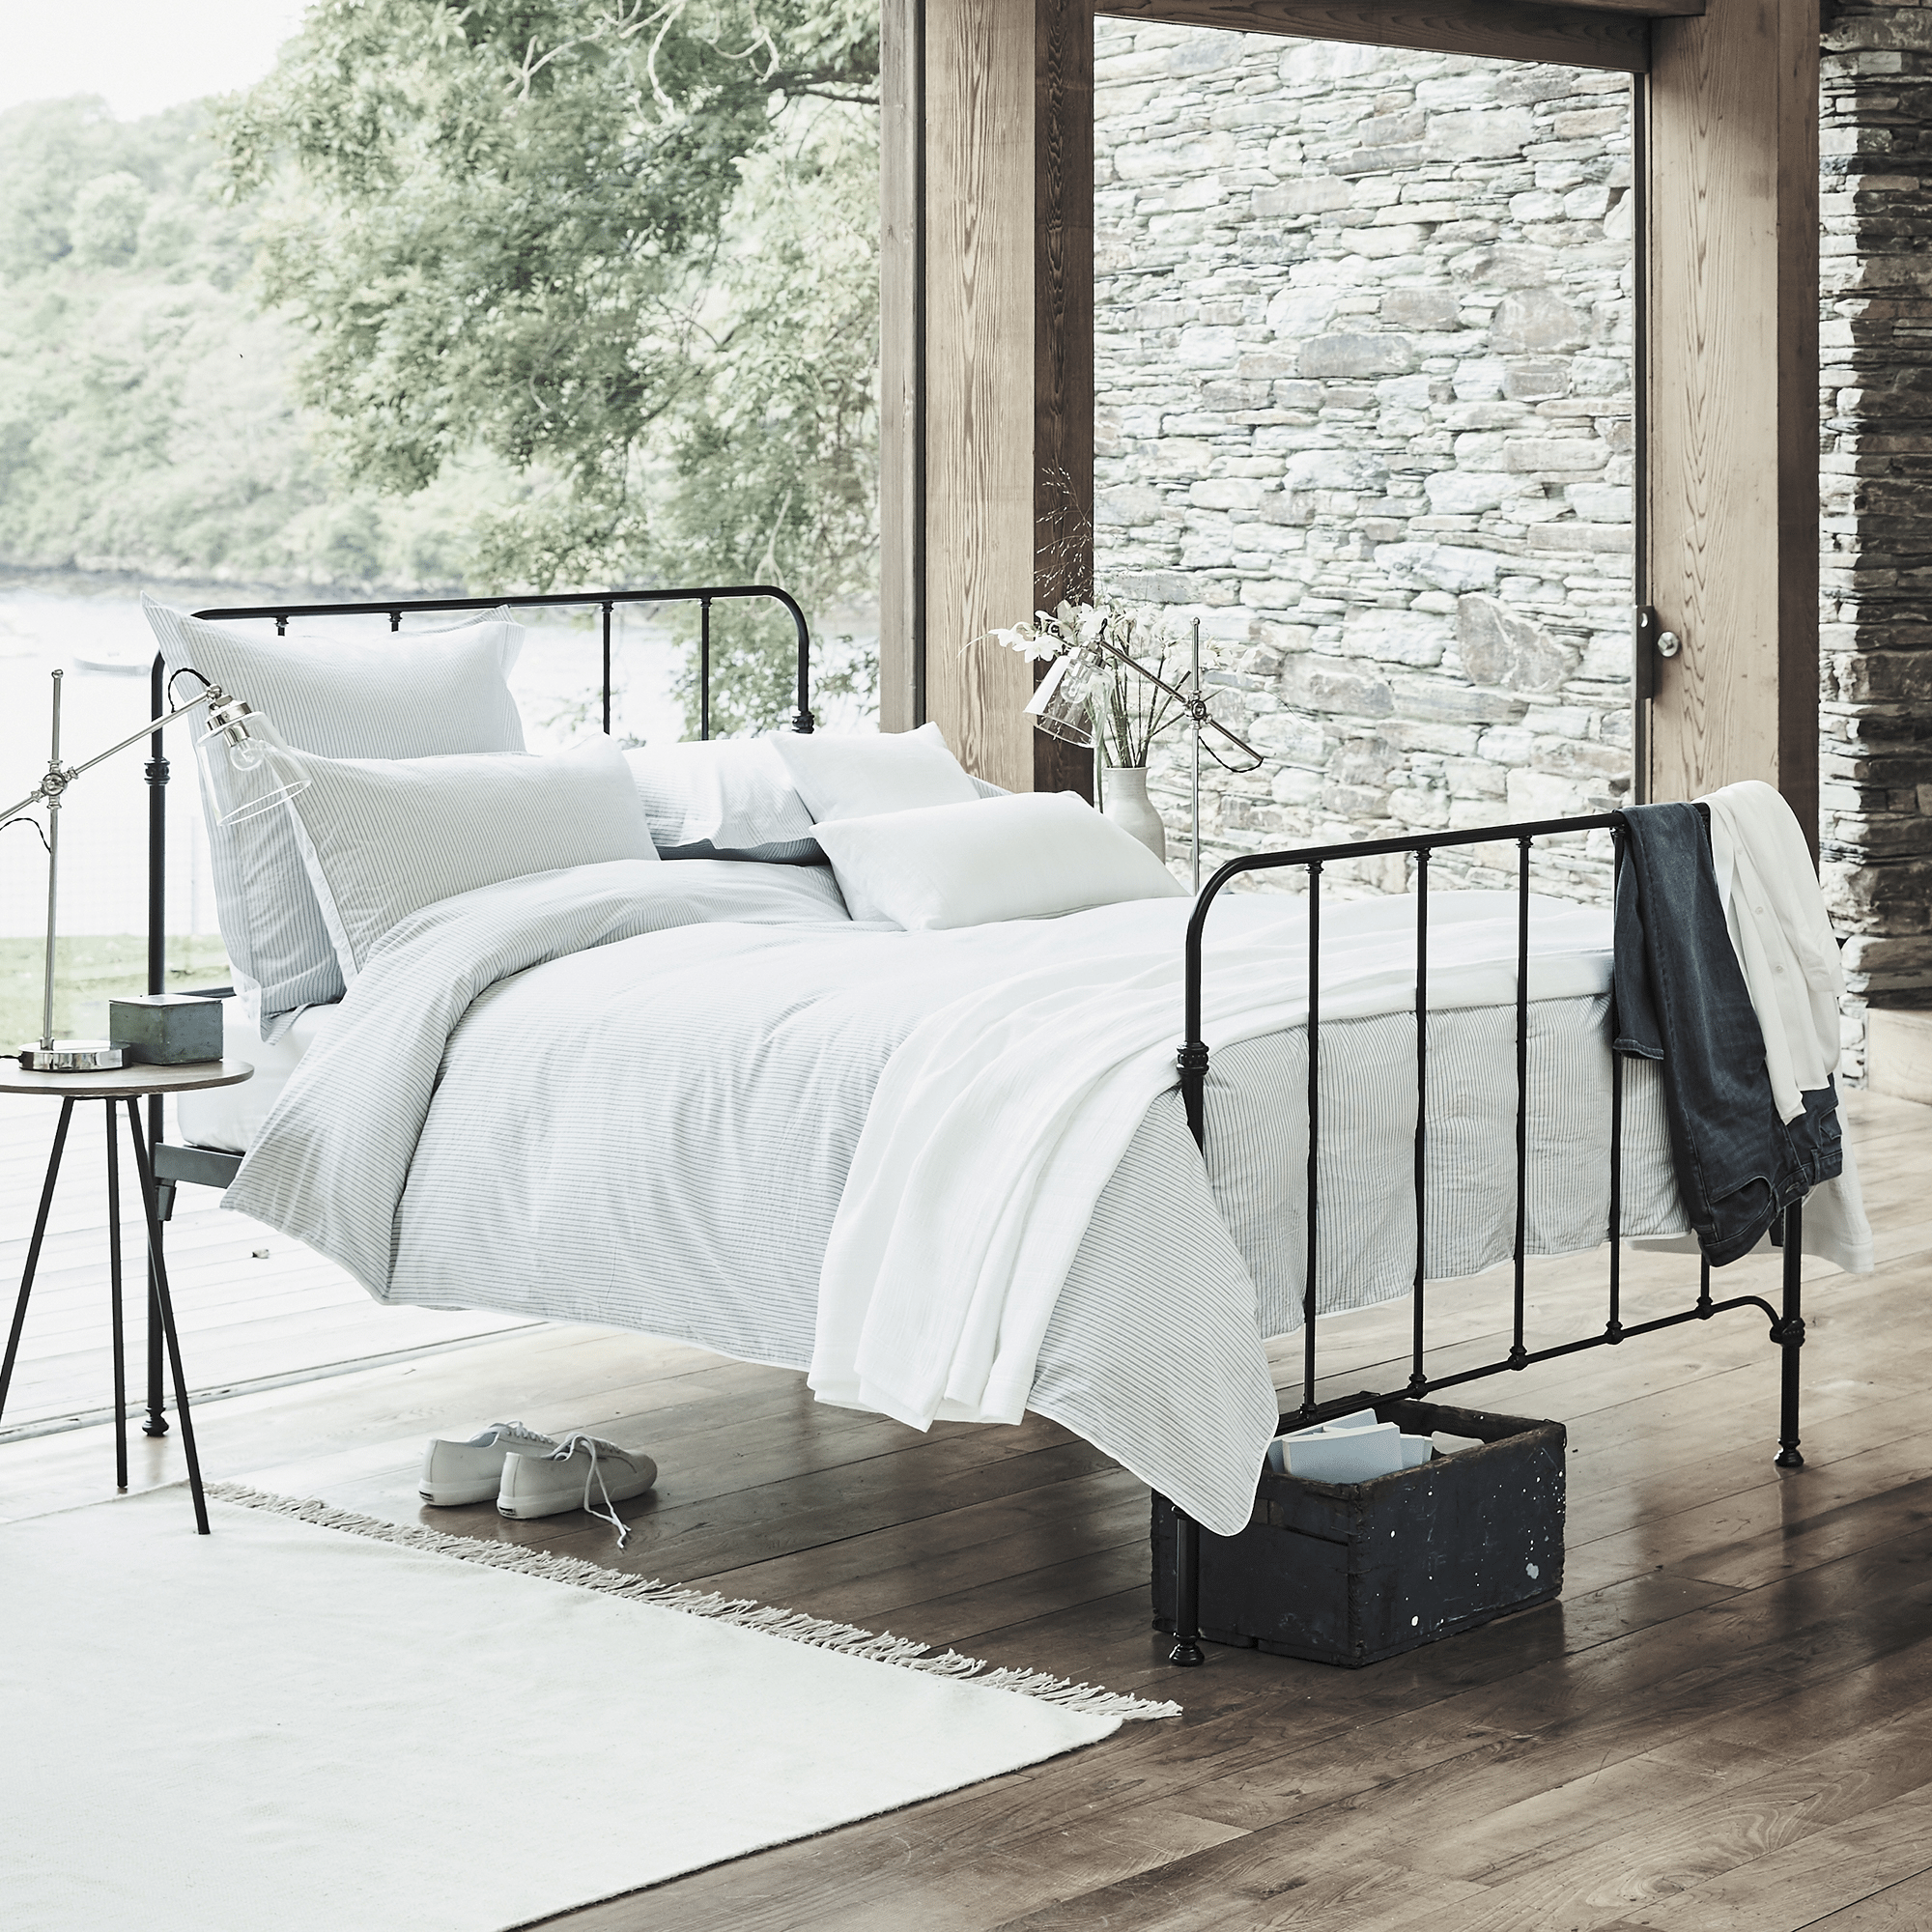 The White Company chooses Godel as its software development partner